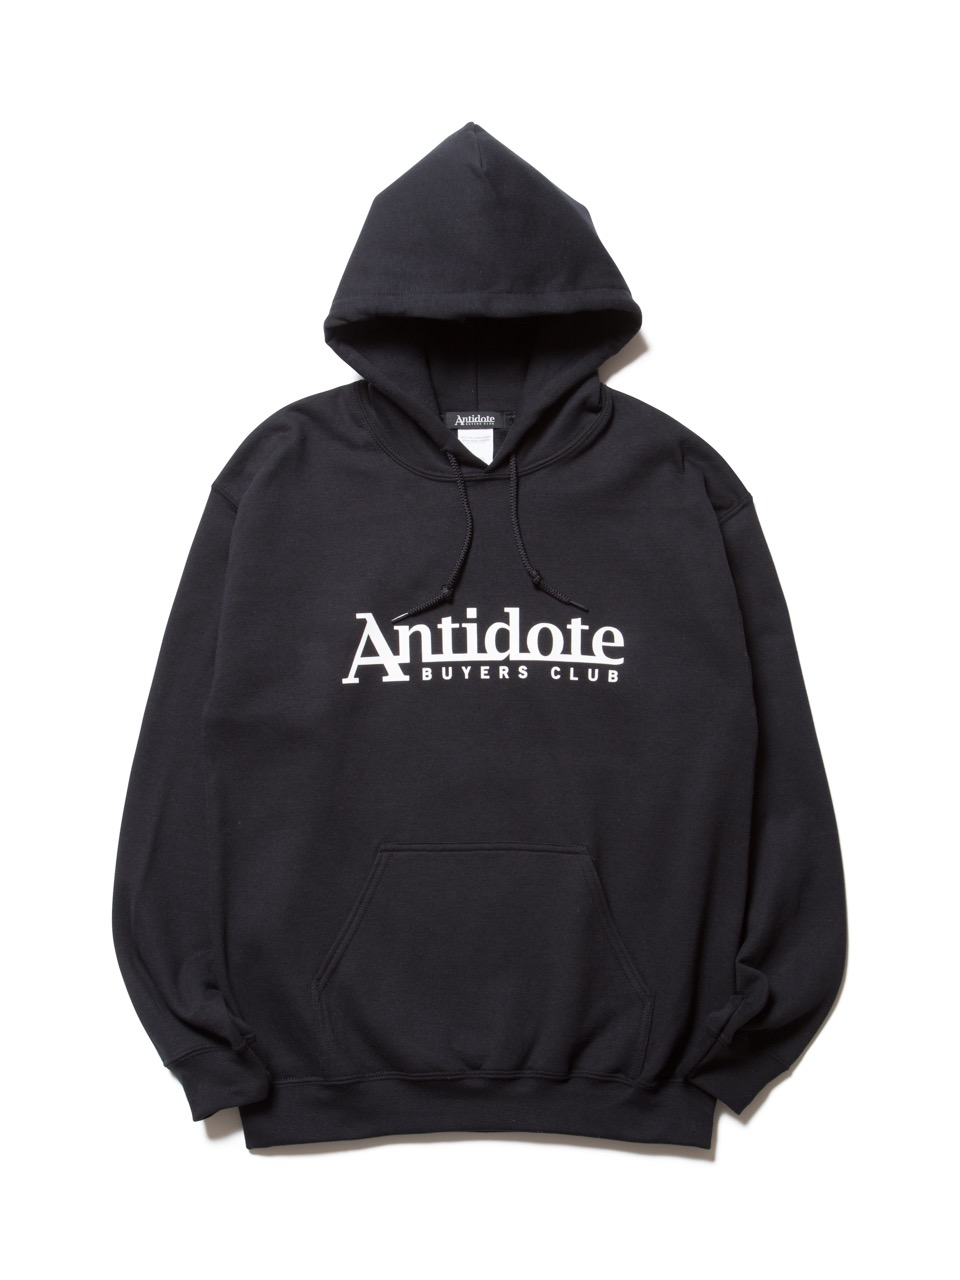 ANTIDOTE BUYERS CLUB Print Pullover Parka (CLASSIC)